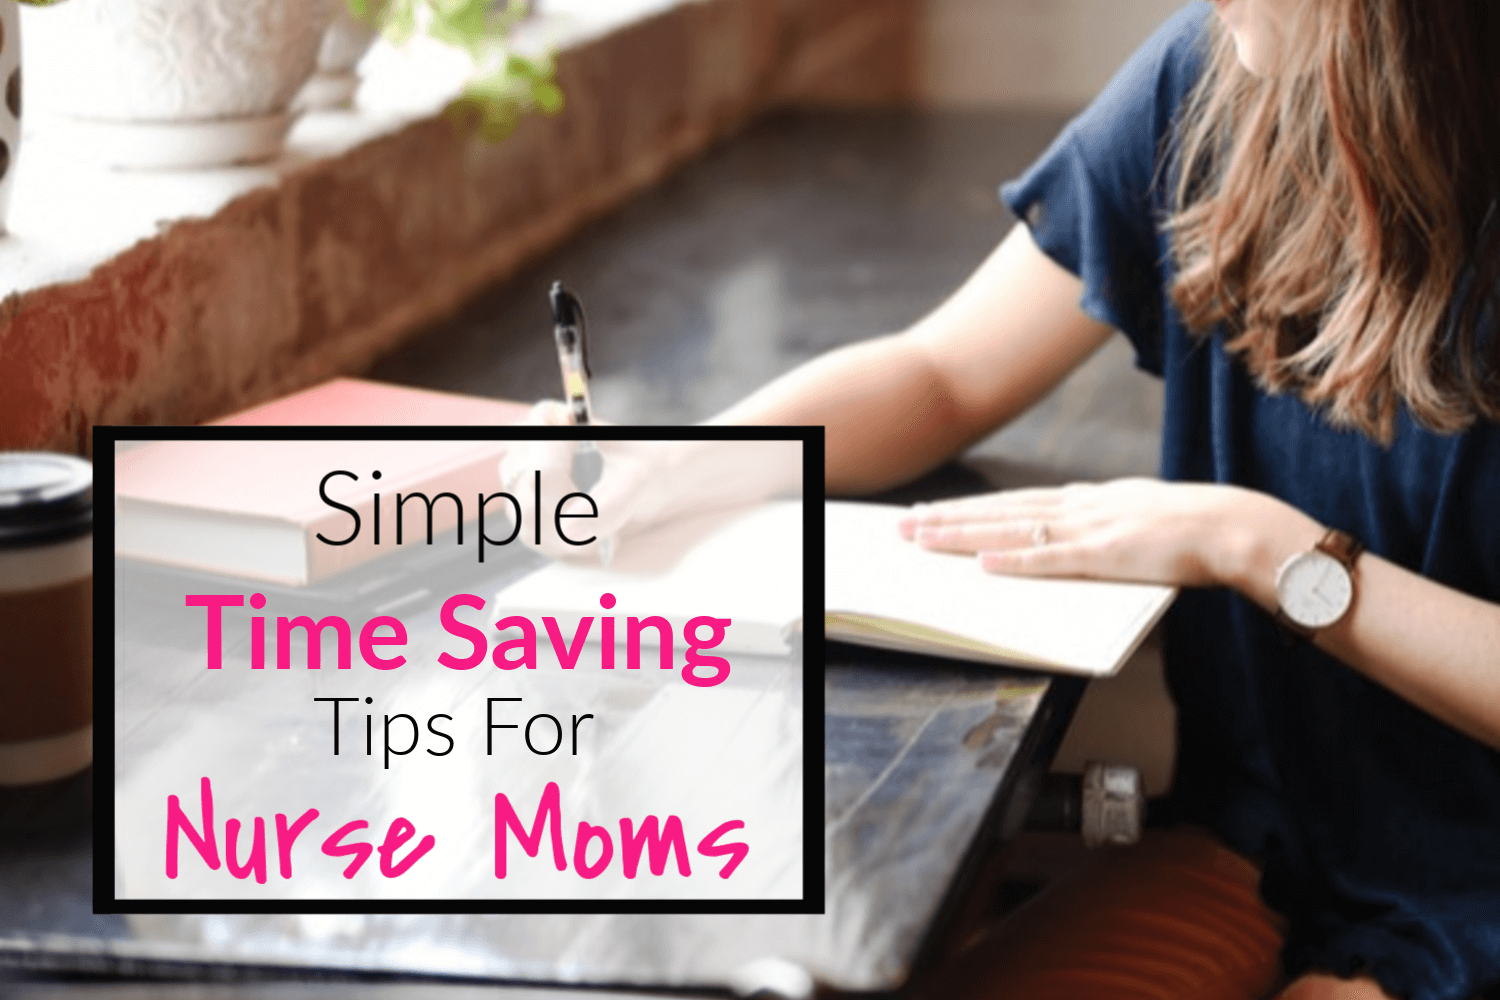 Simple Time Saving Tips For Nurse Moms